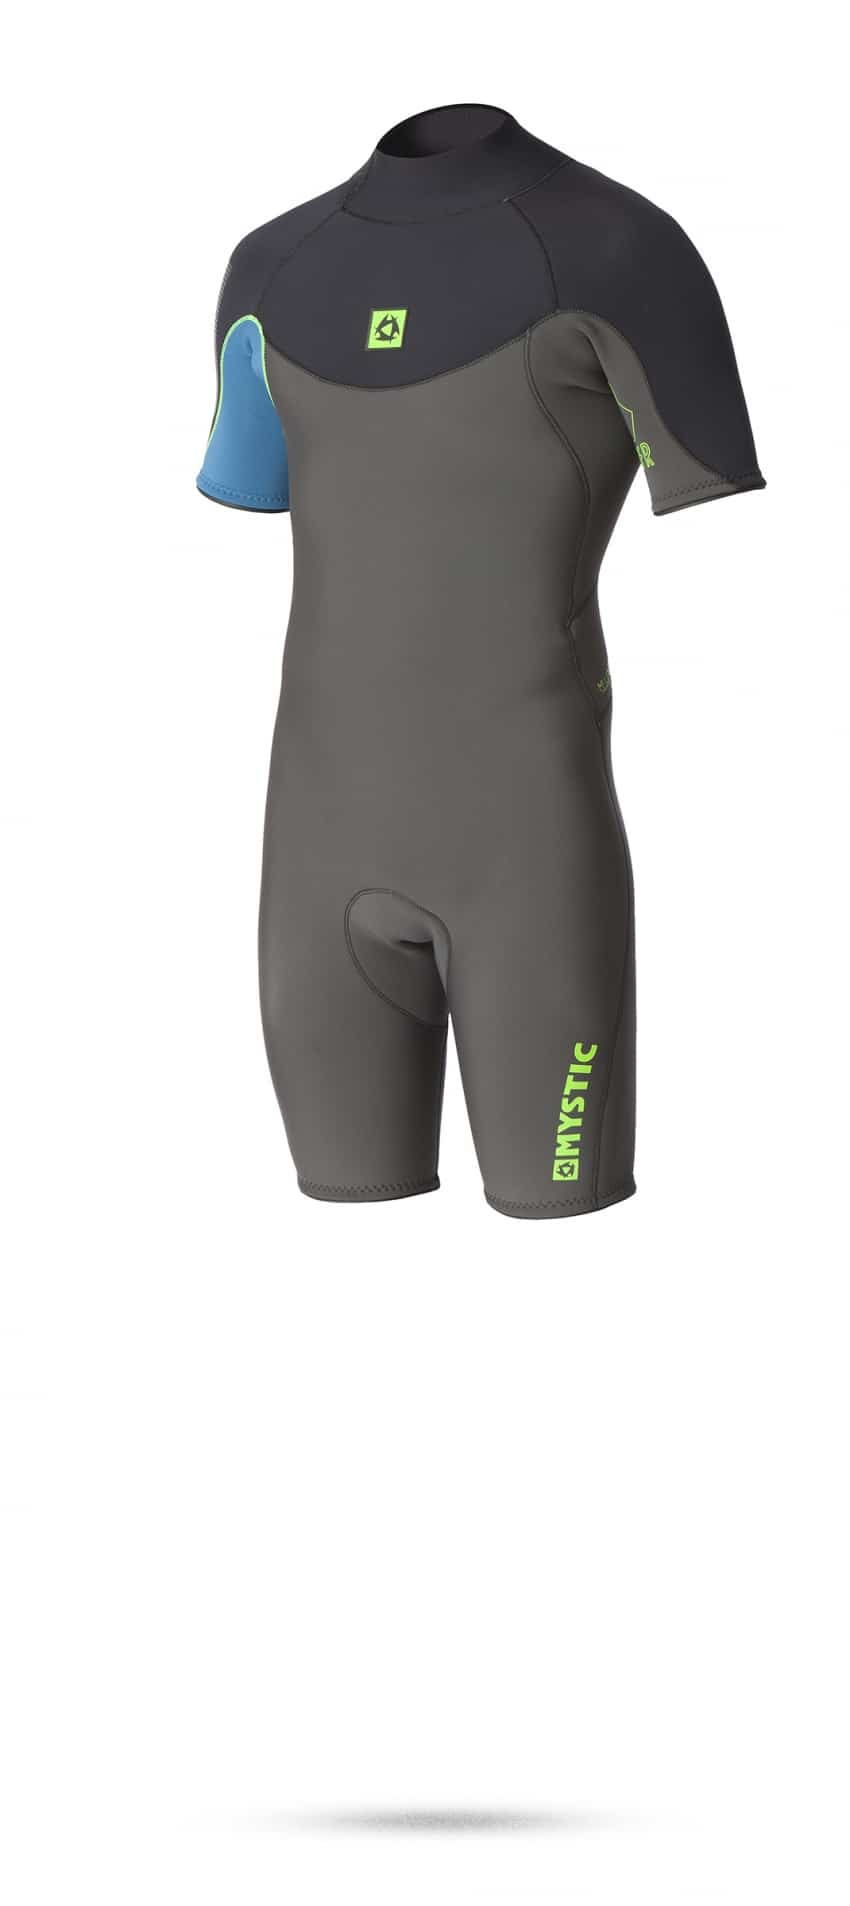 Wetsuit Crossfire shorty bz  f